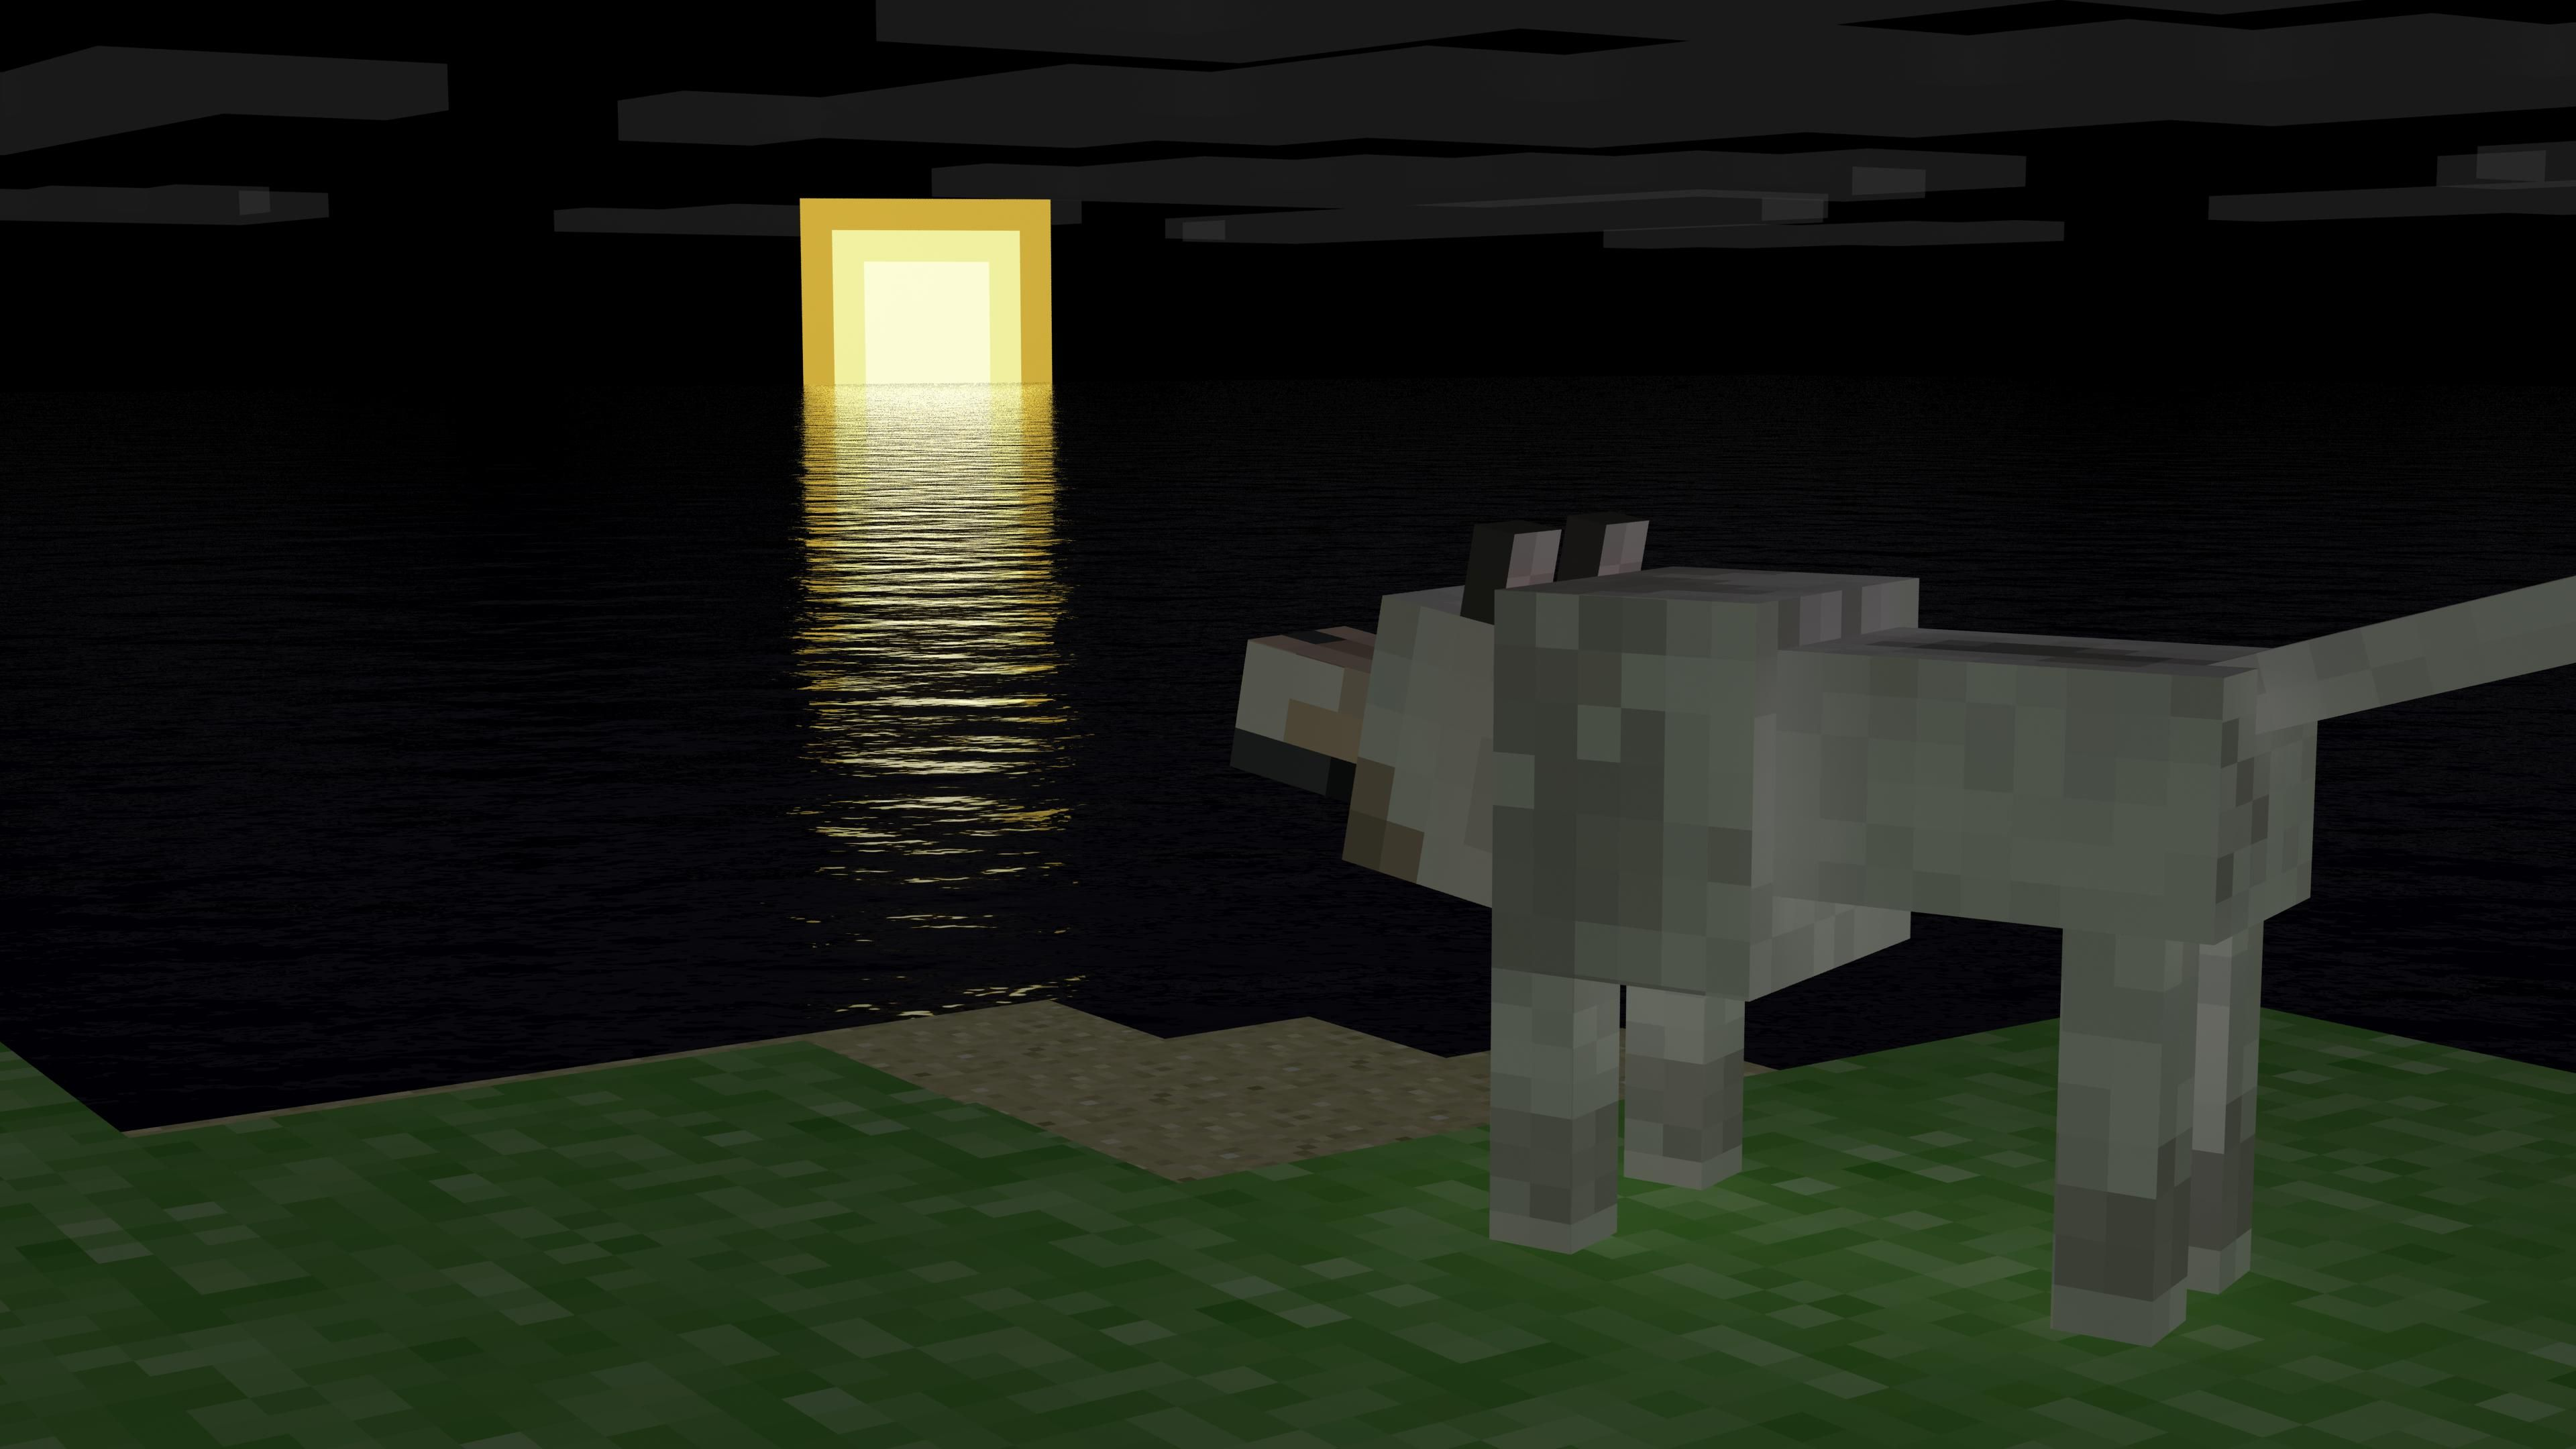 Download Wallpaper Minecraft Google - cec400a67d4caa4fbca090c844dbe2a3  Perfect Image Reference_1004355.jpg